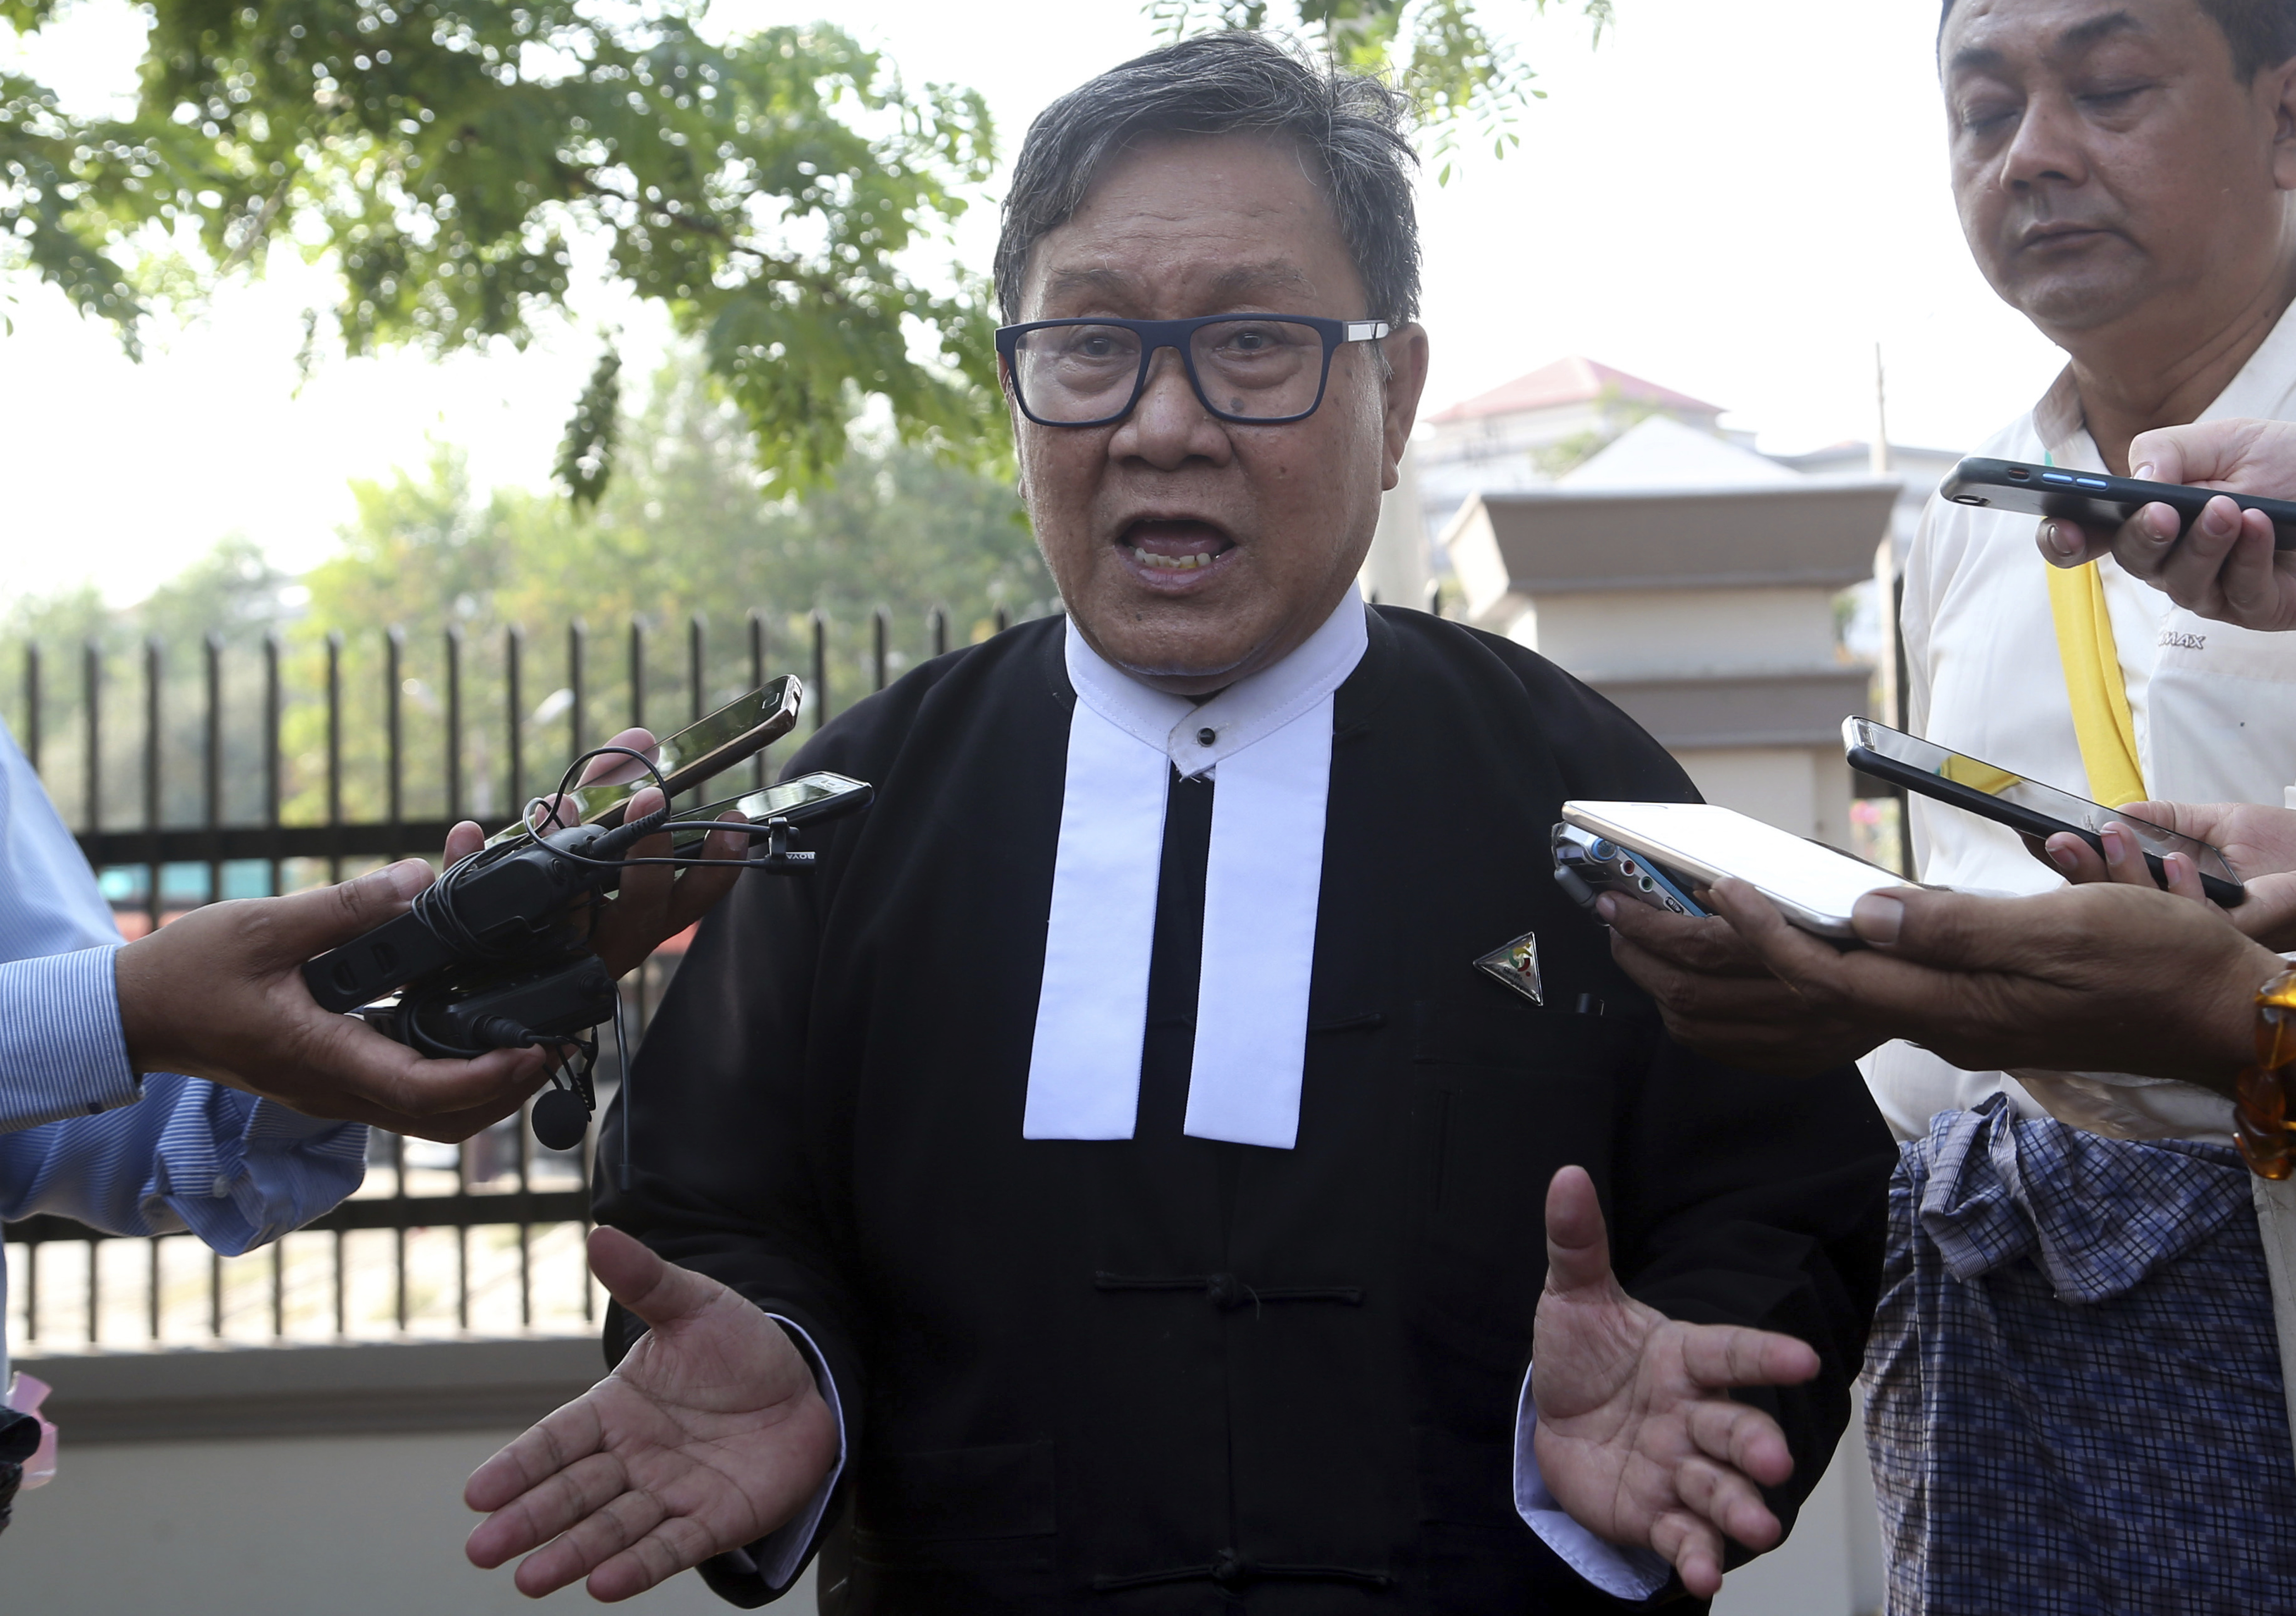 Khin Maung Zaw, a lawyer of two Reuters journalists, Wa Lone and Kyaw Soe Oo, talks to journalists as he leaves the Supreme Court in Naypyitaw, Myanmar, March 26, 2019.